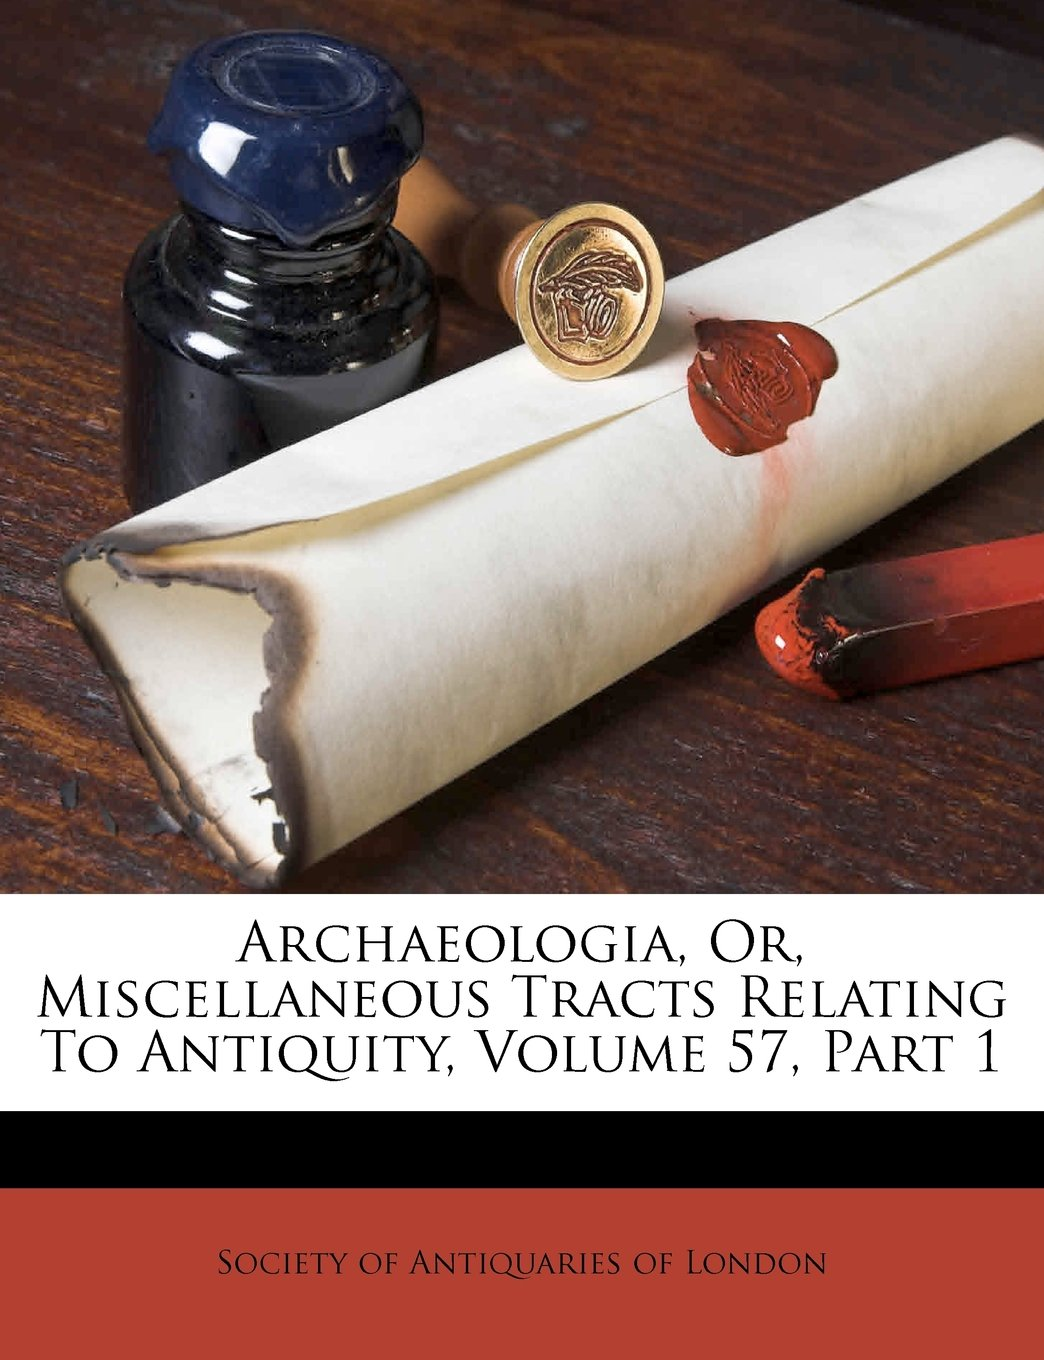 Download Archaeologia, Or, Miscellaneous Tracts Relating To Antiquity, Volume 57, Part 1 pdf